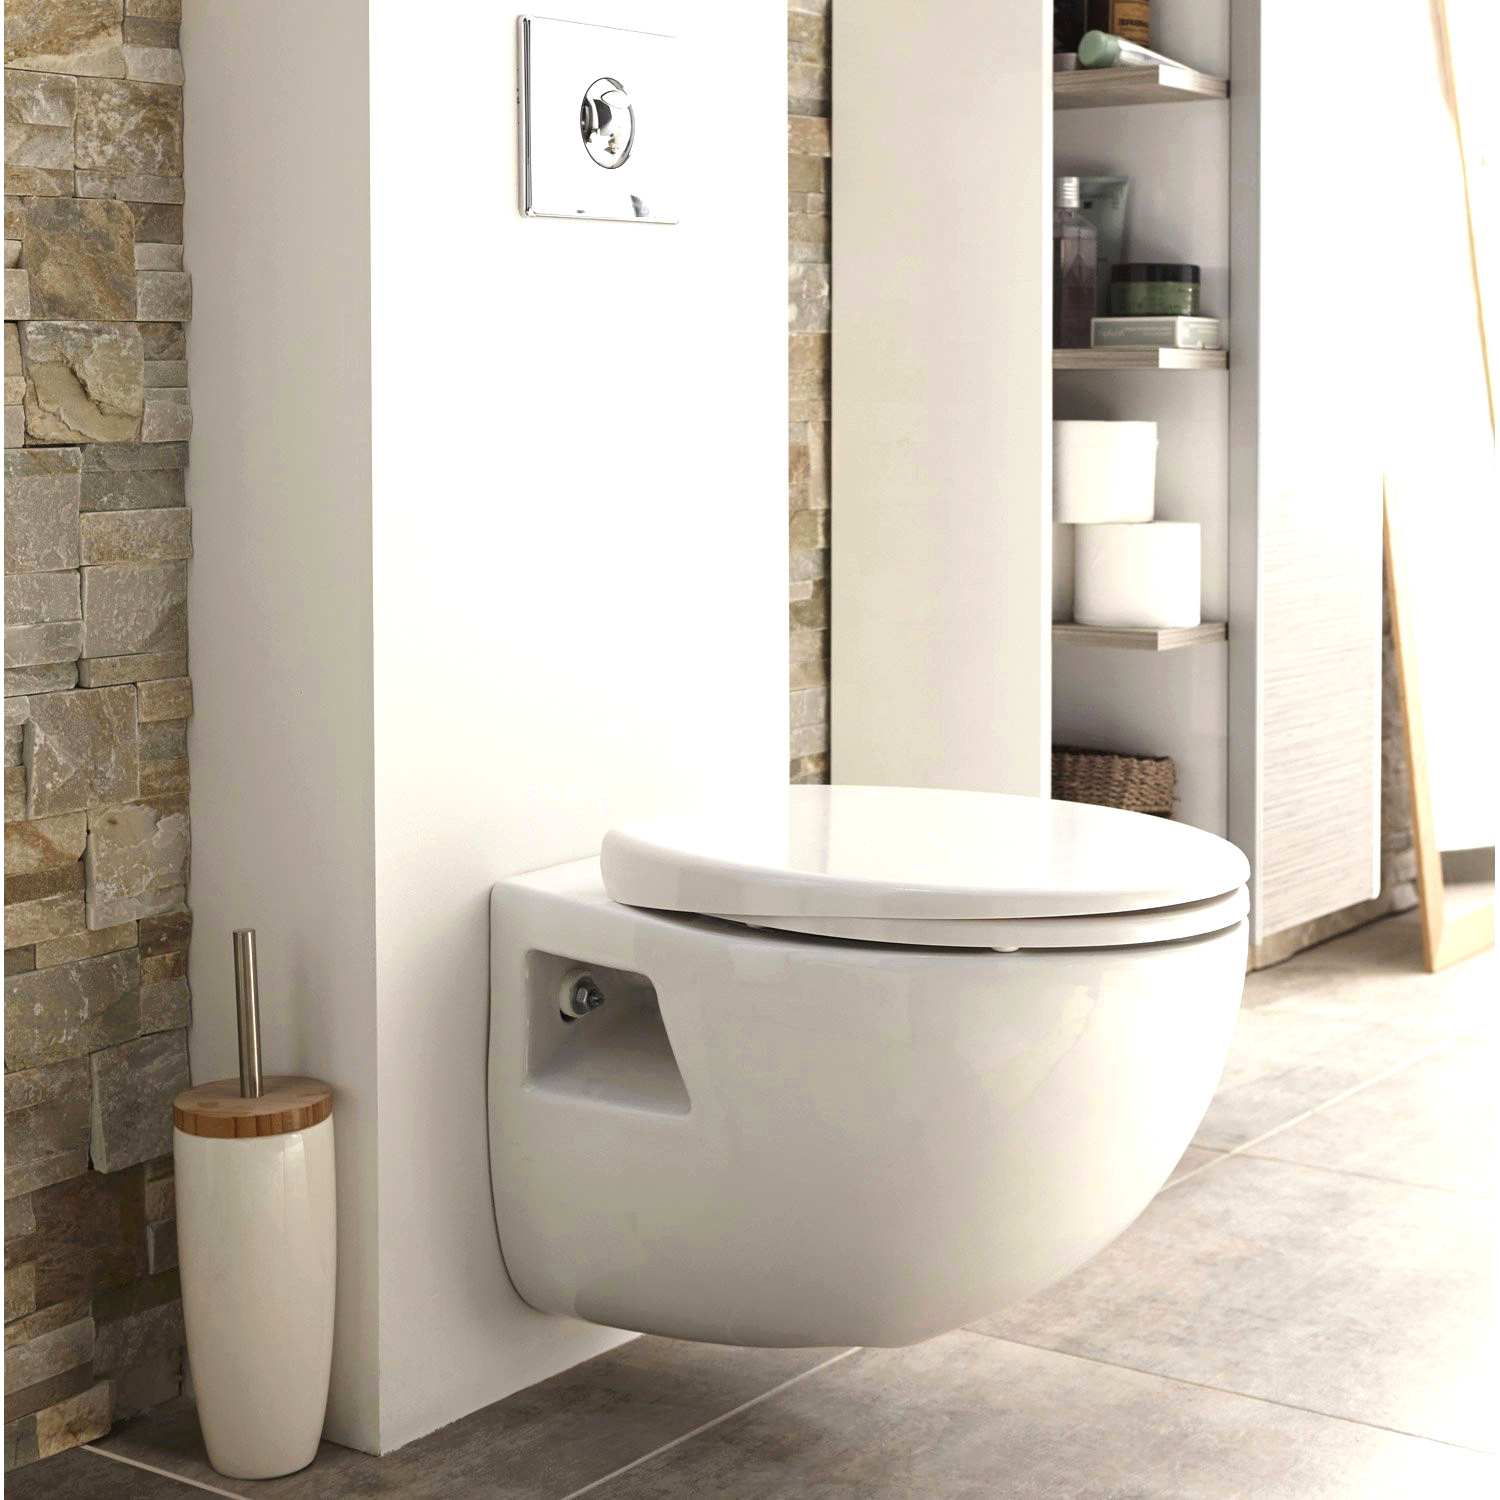 Lave Main Leroy Merlin Meuble Luxe Images Meuble Wc Leroy Merlin Search Results Meuble Wc Avec Lave Main Avec